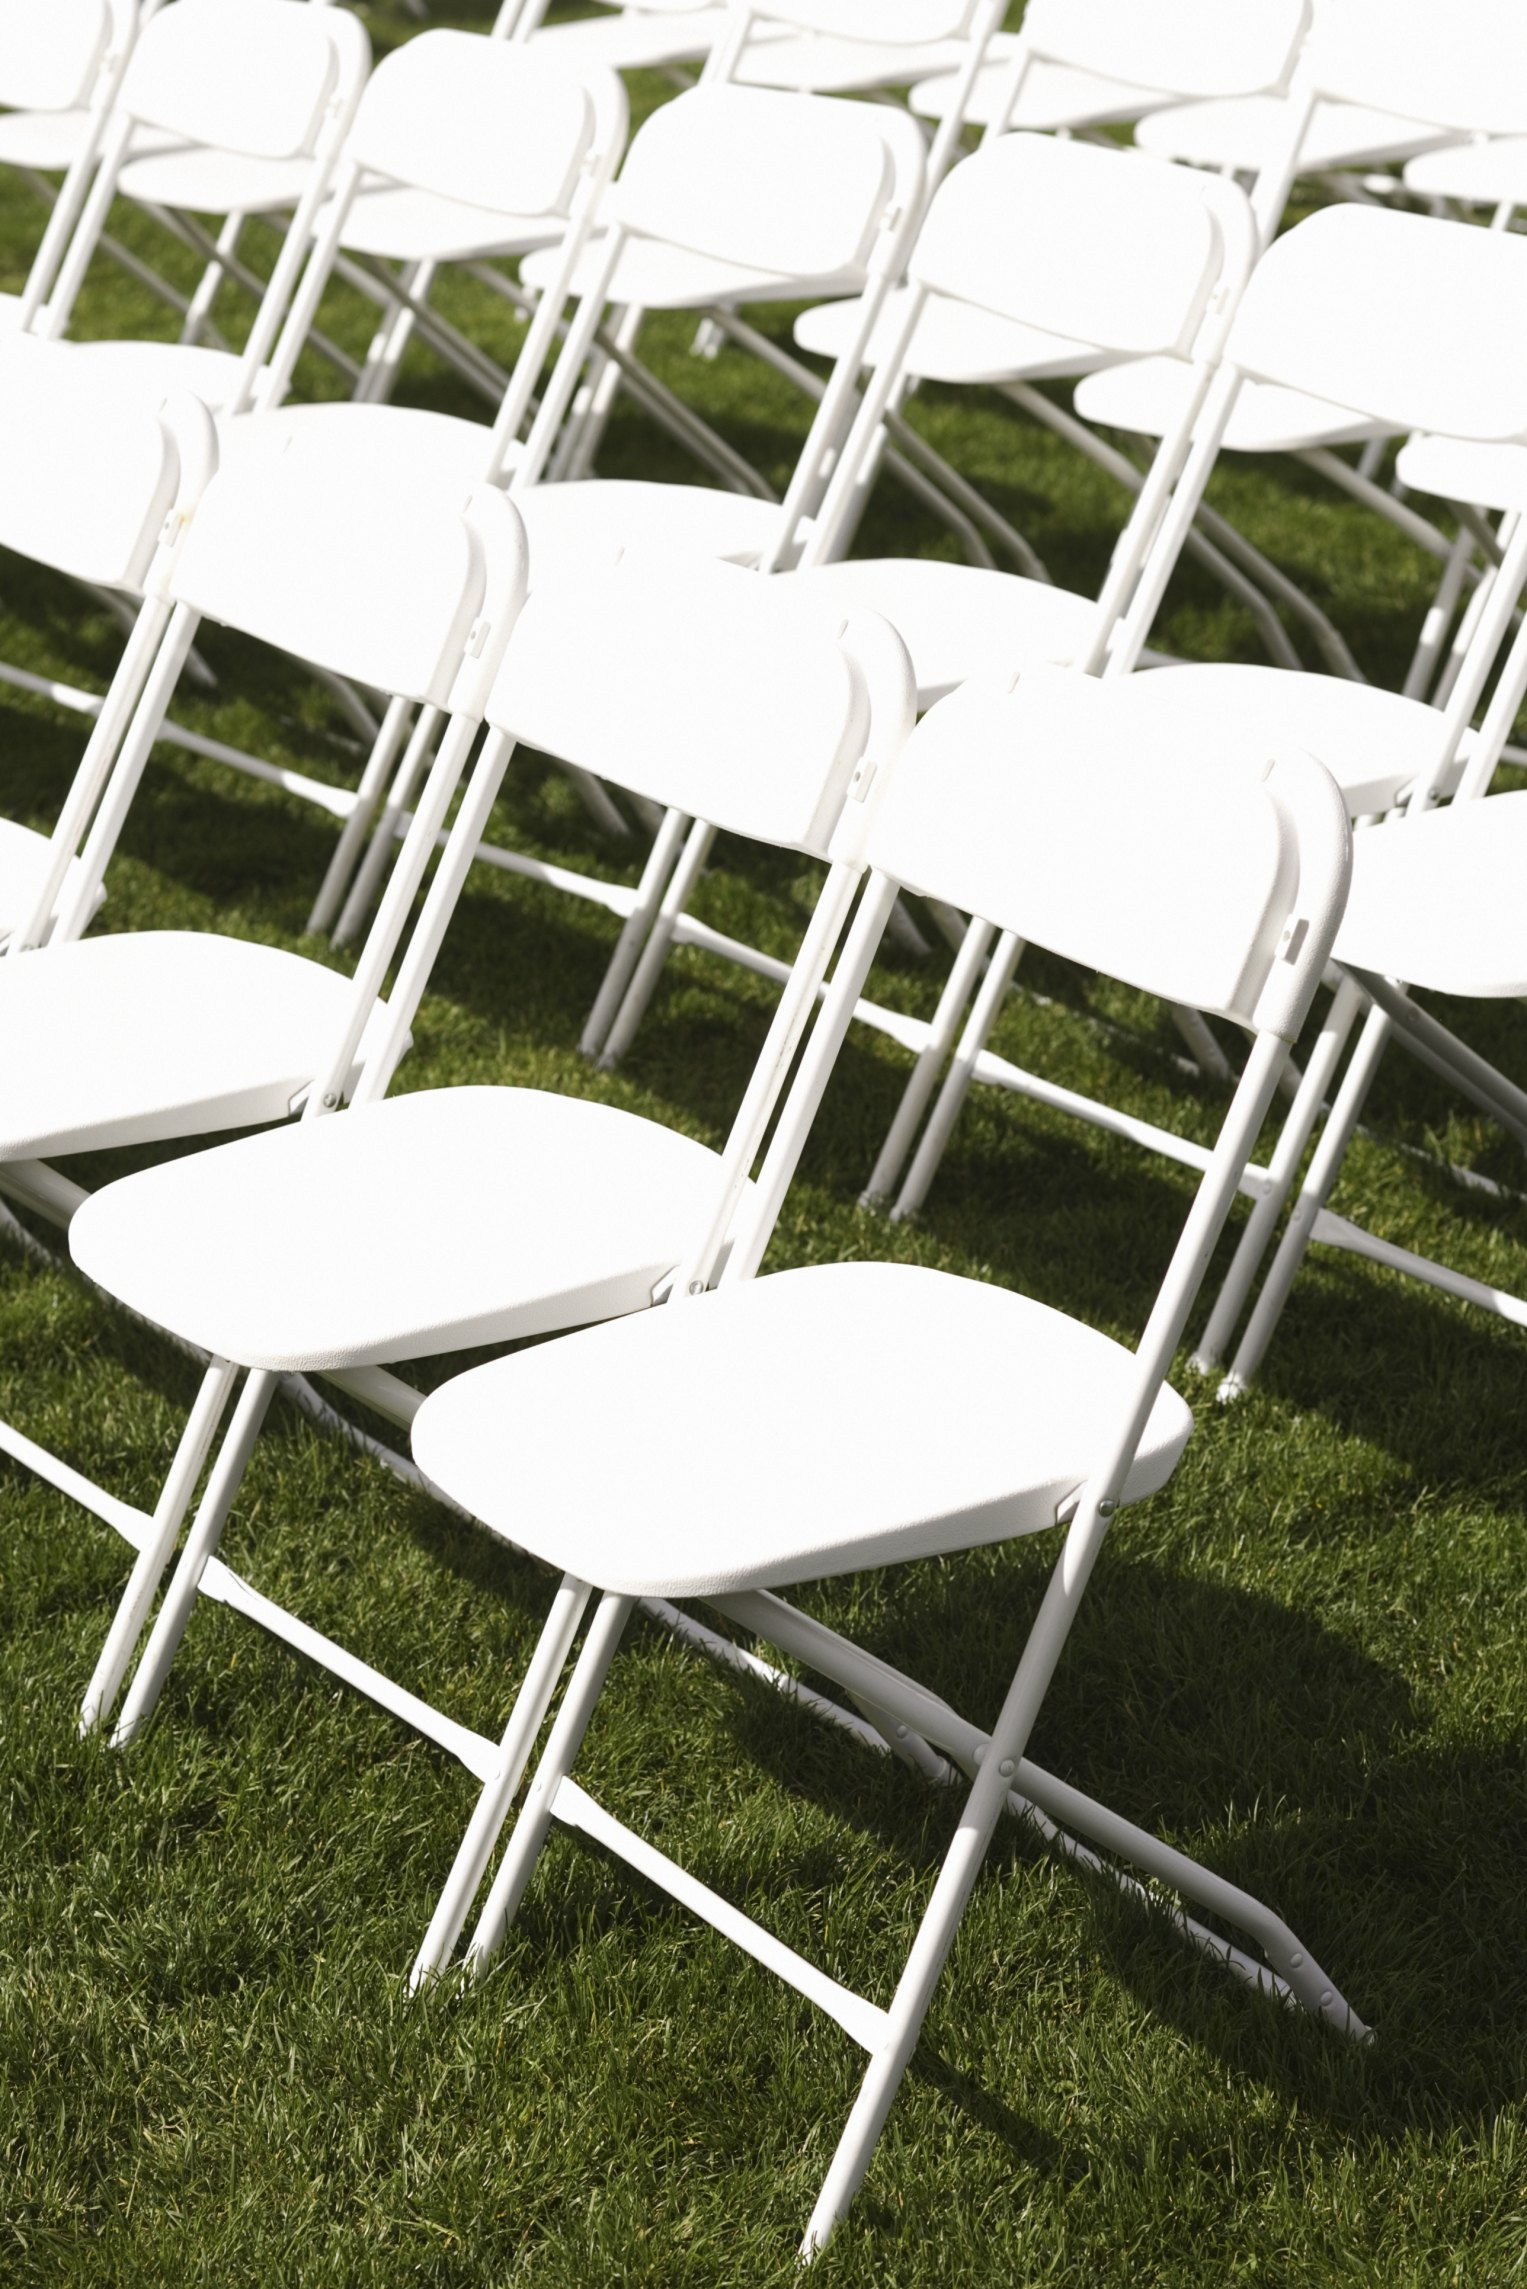 metal chair covers wedding best back cushion for office how much room when setting up folding chairs ehow